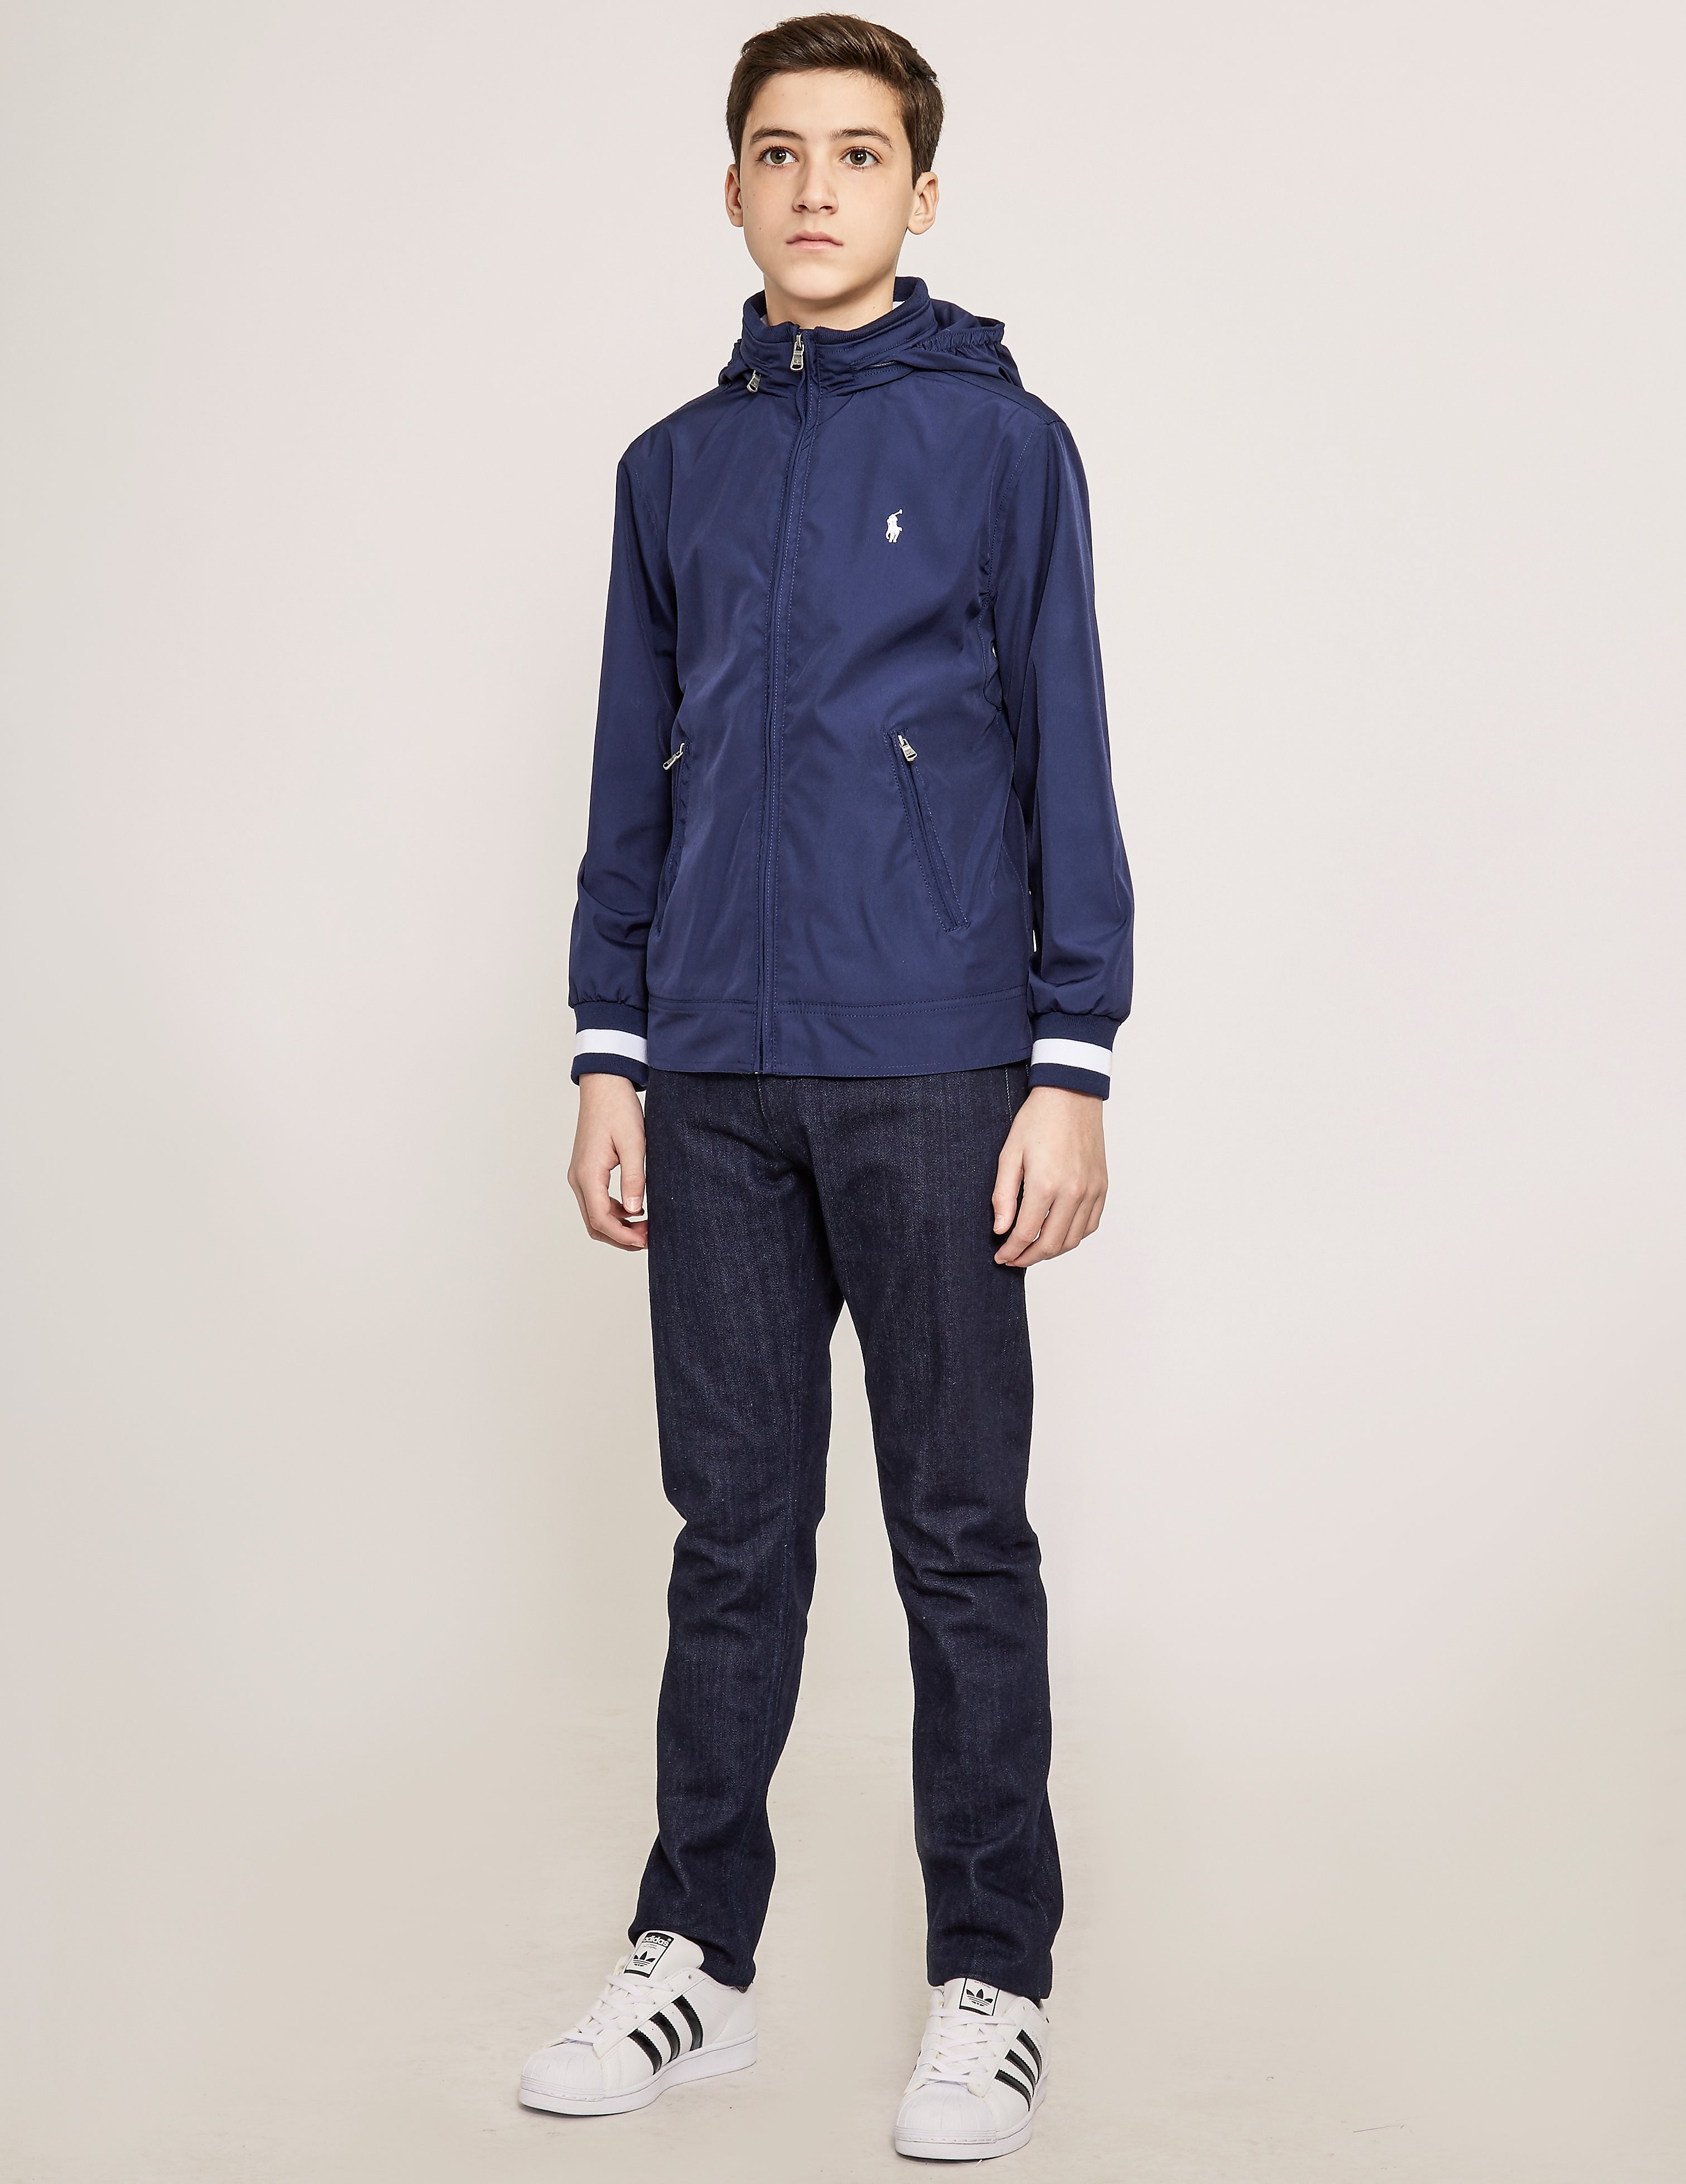 Polo Ralph Lauren Anorak Jacket